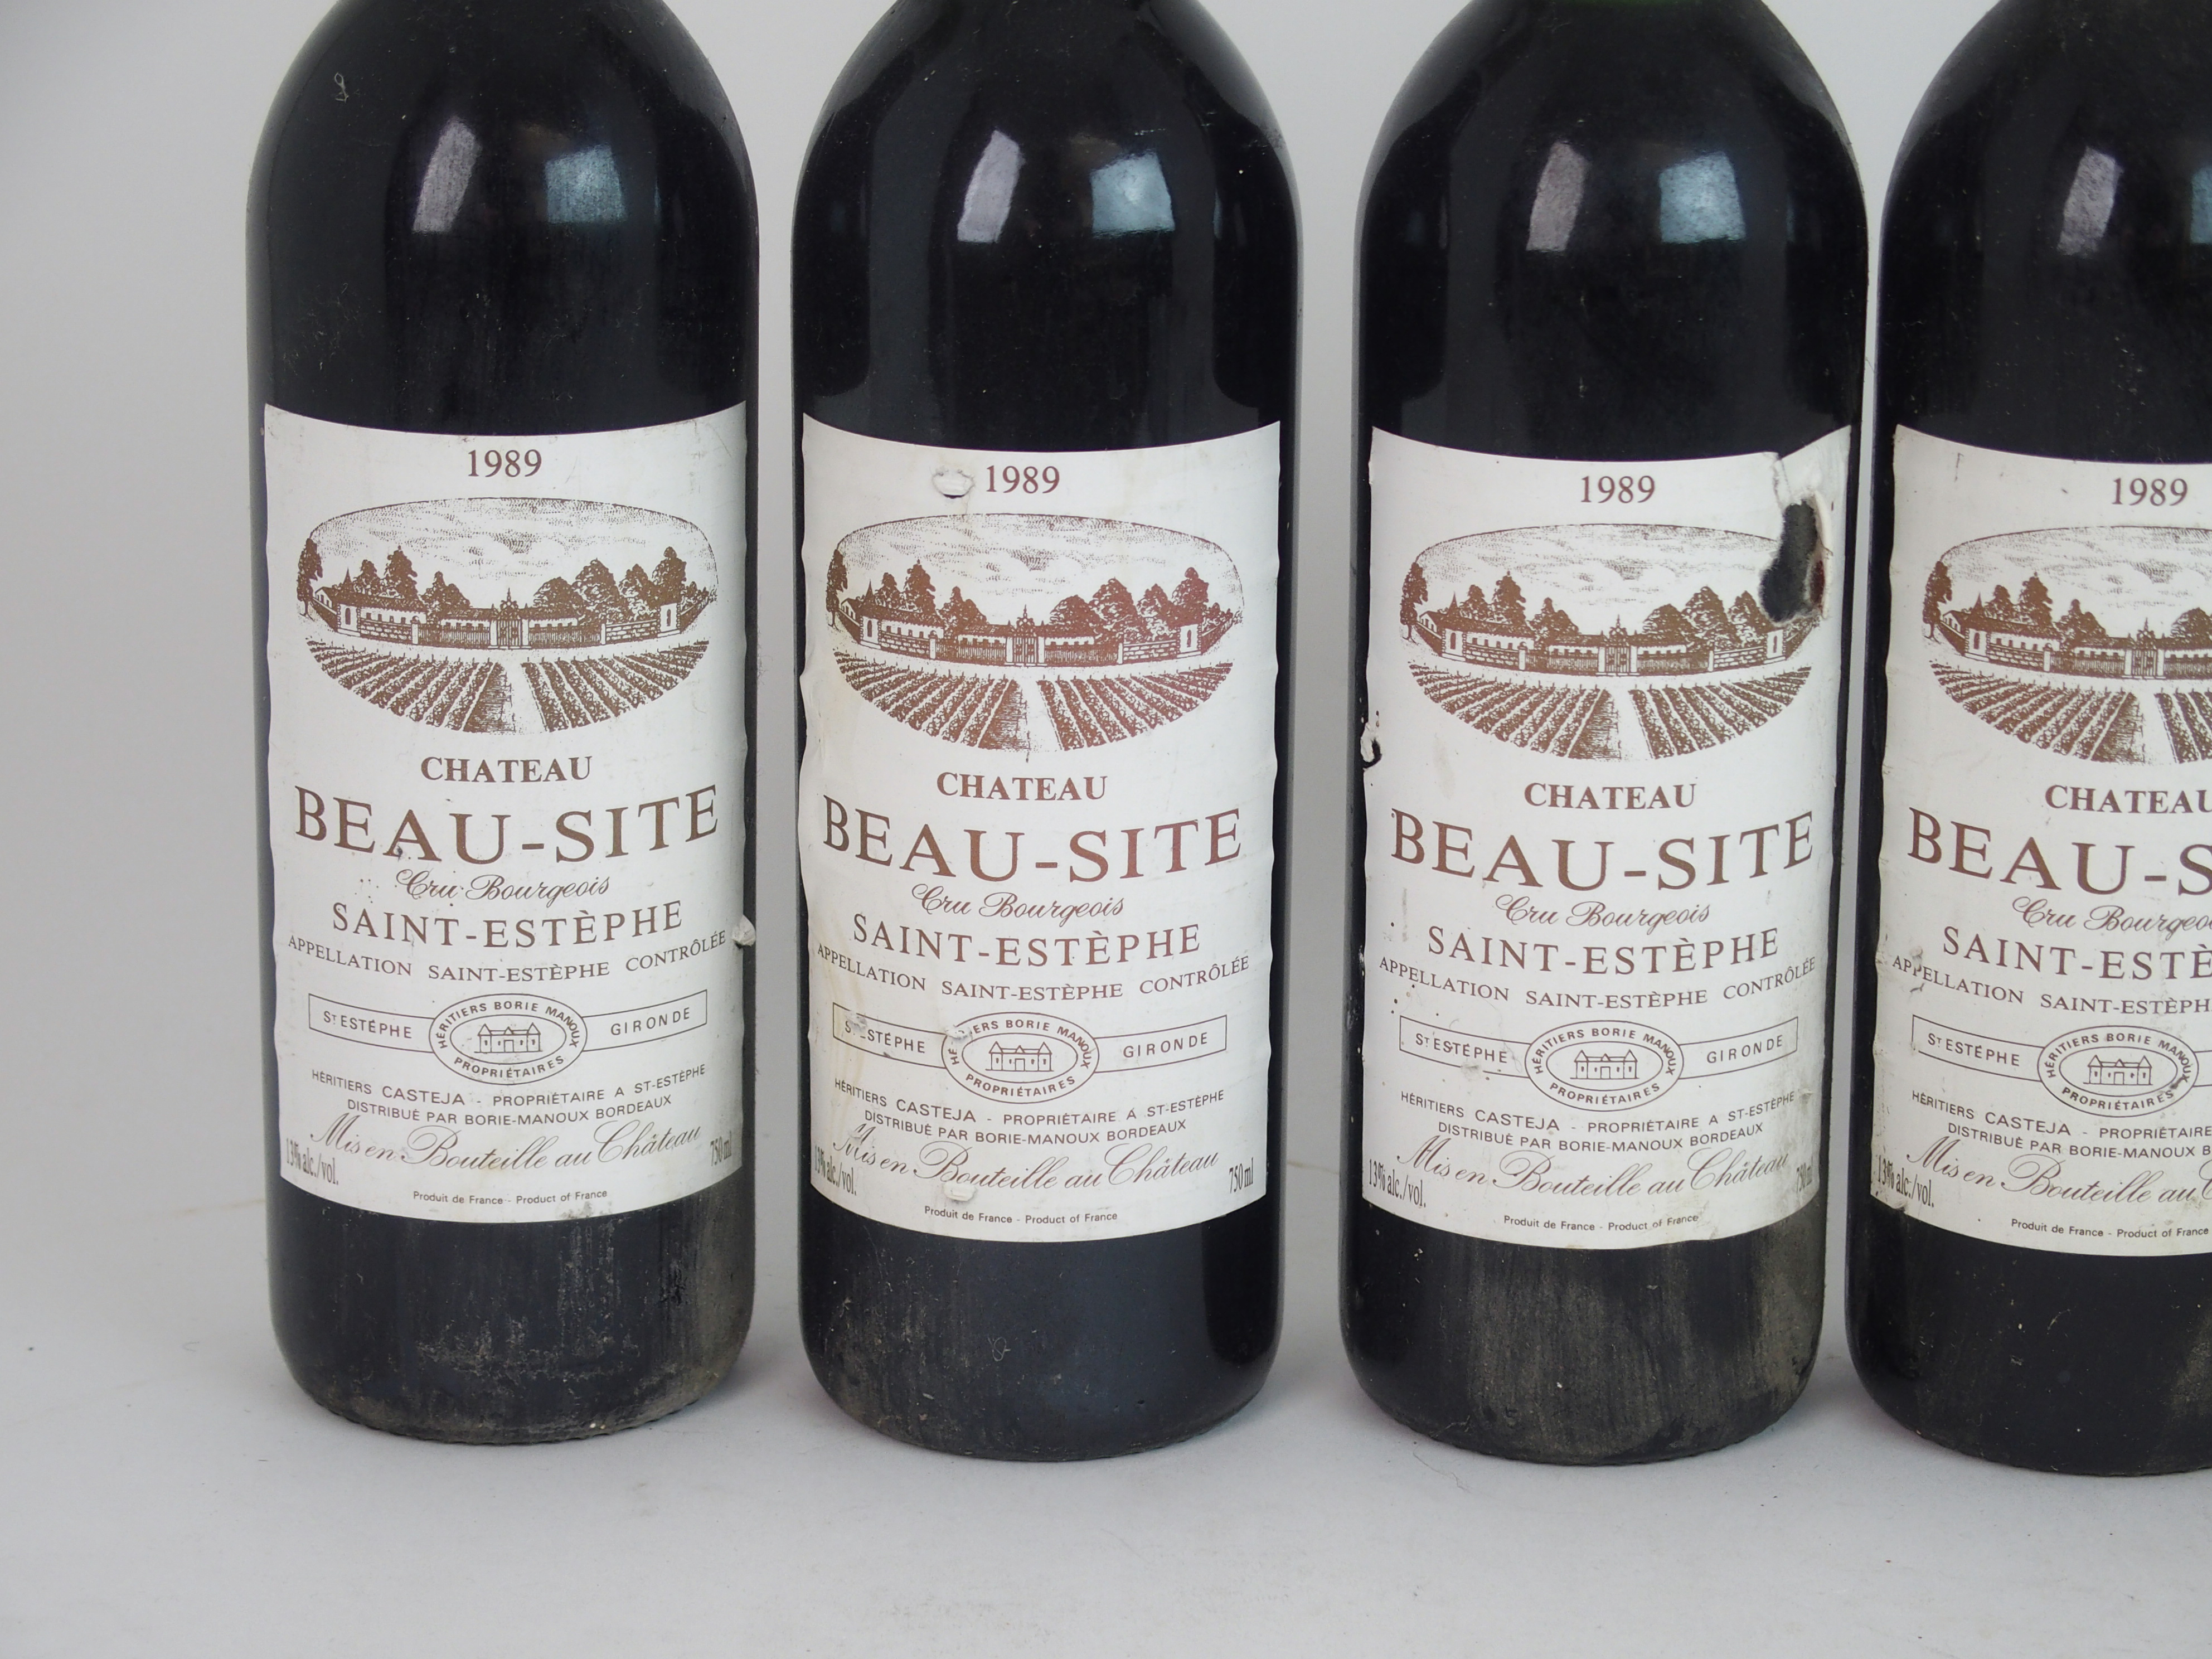 ELEVEN BOTTLES OF CHATEAU BEAU-SITE, SAINT ESTEPHE, 1989 13%vol, 750ml, labels stained and some torn - Image 6 of 8